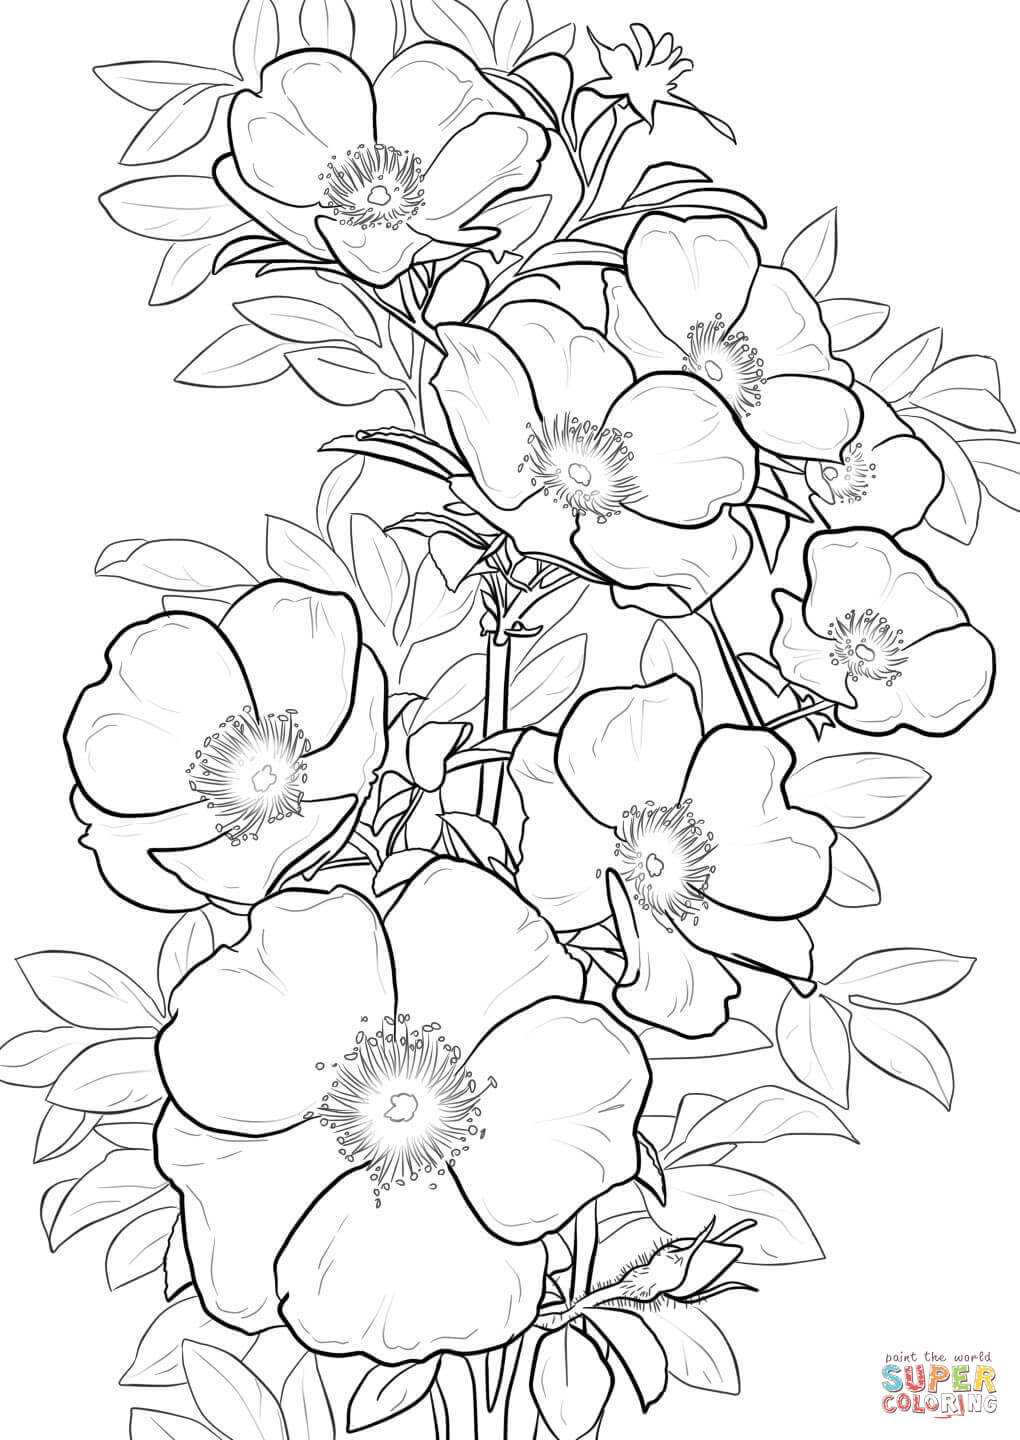 coloring pictures roses coloring pages rose coloring pictures roses